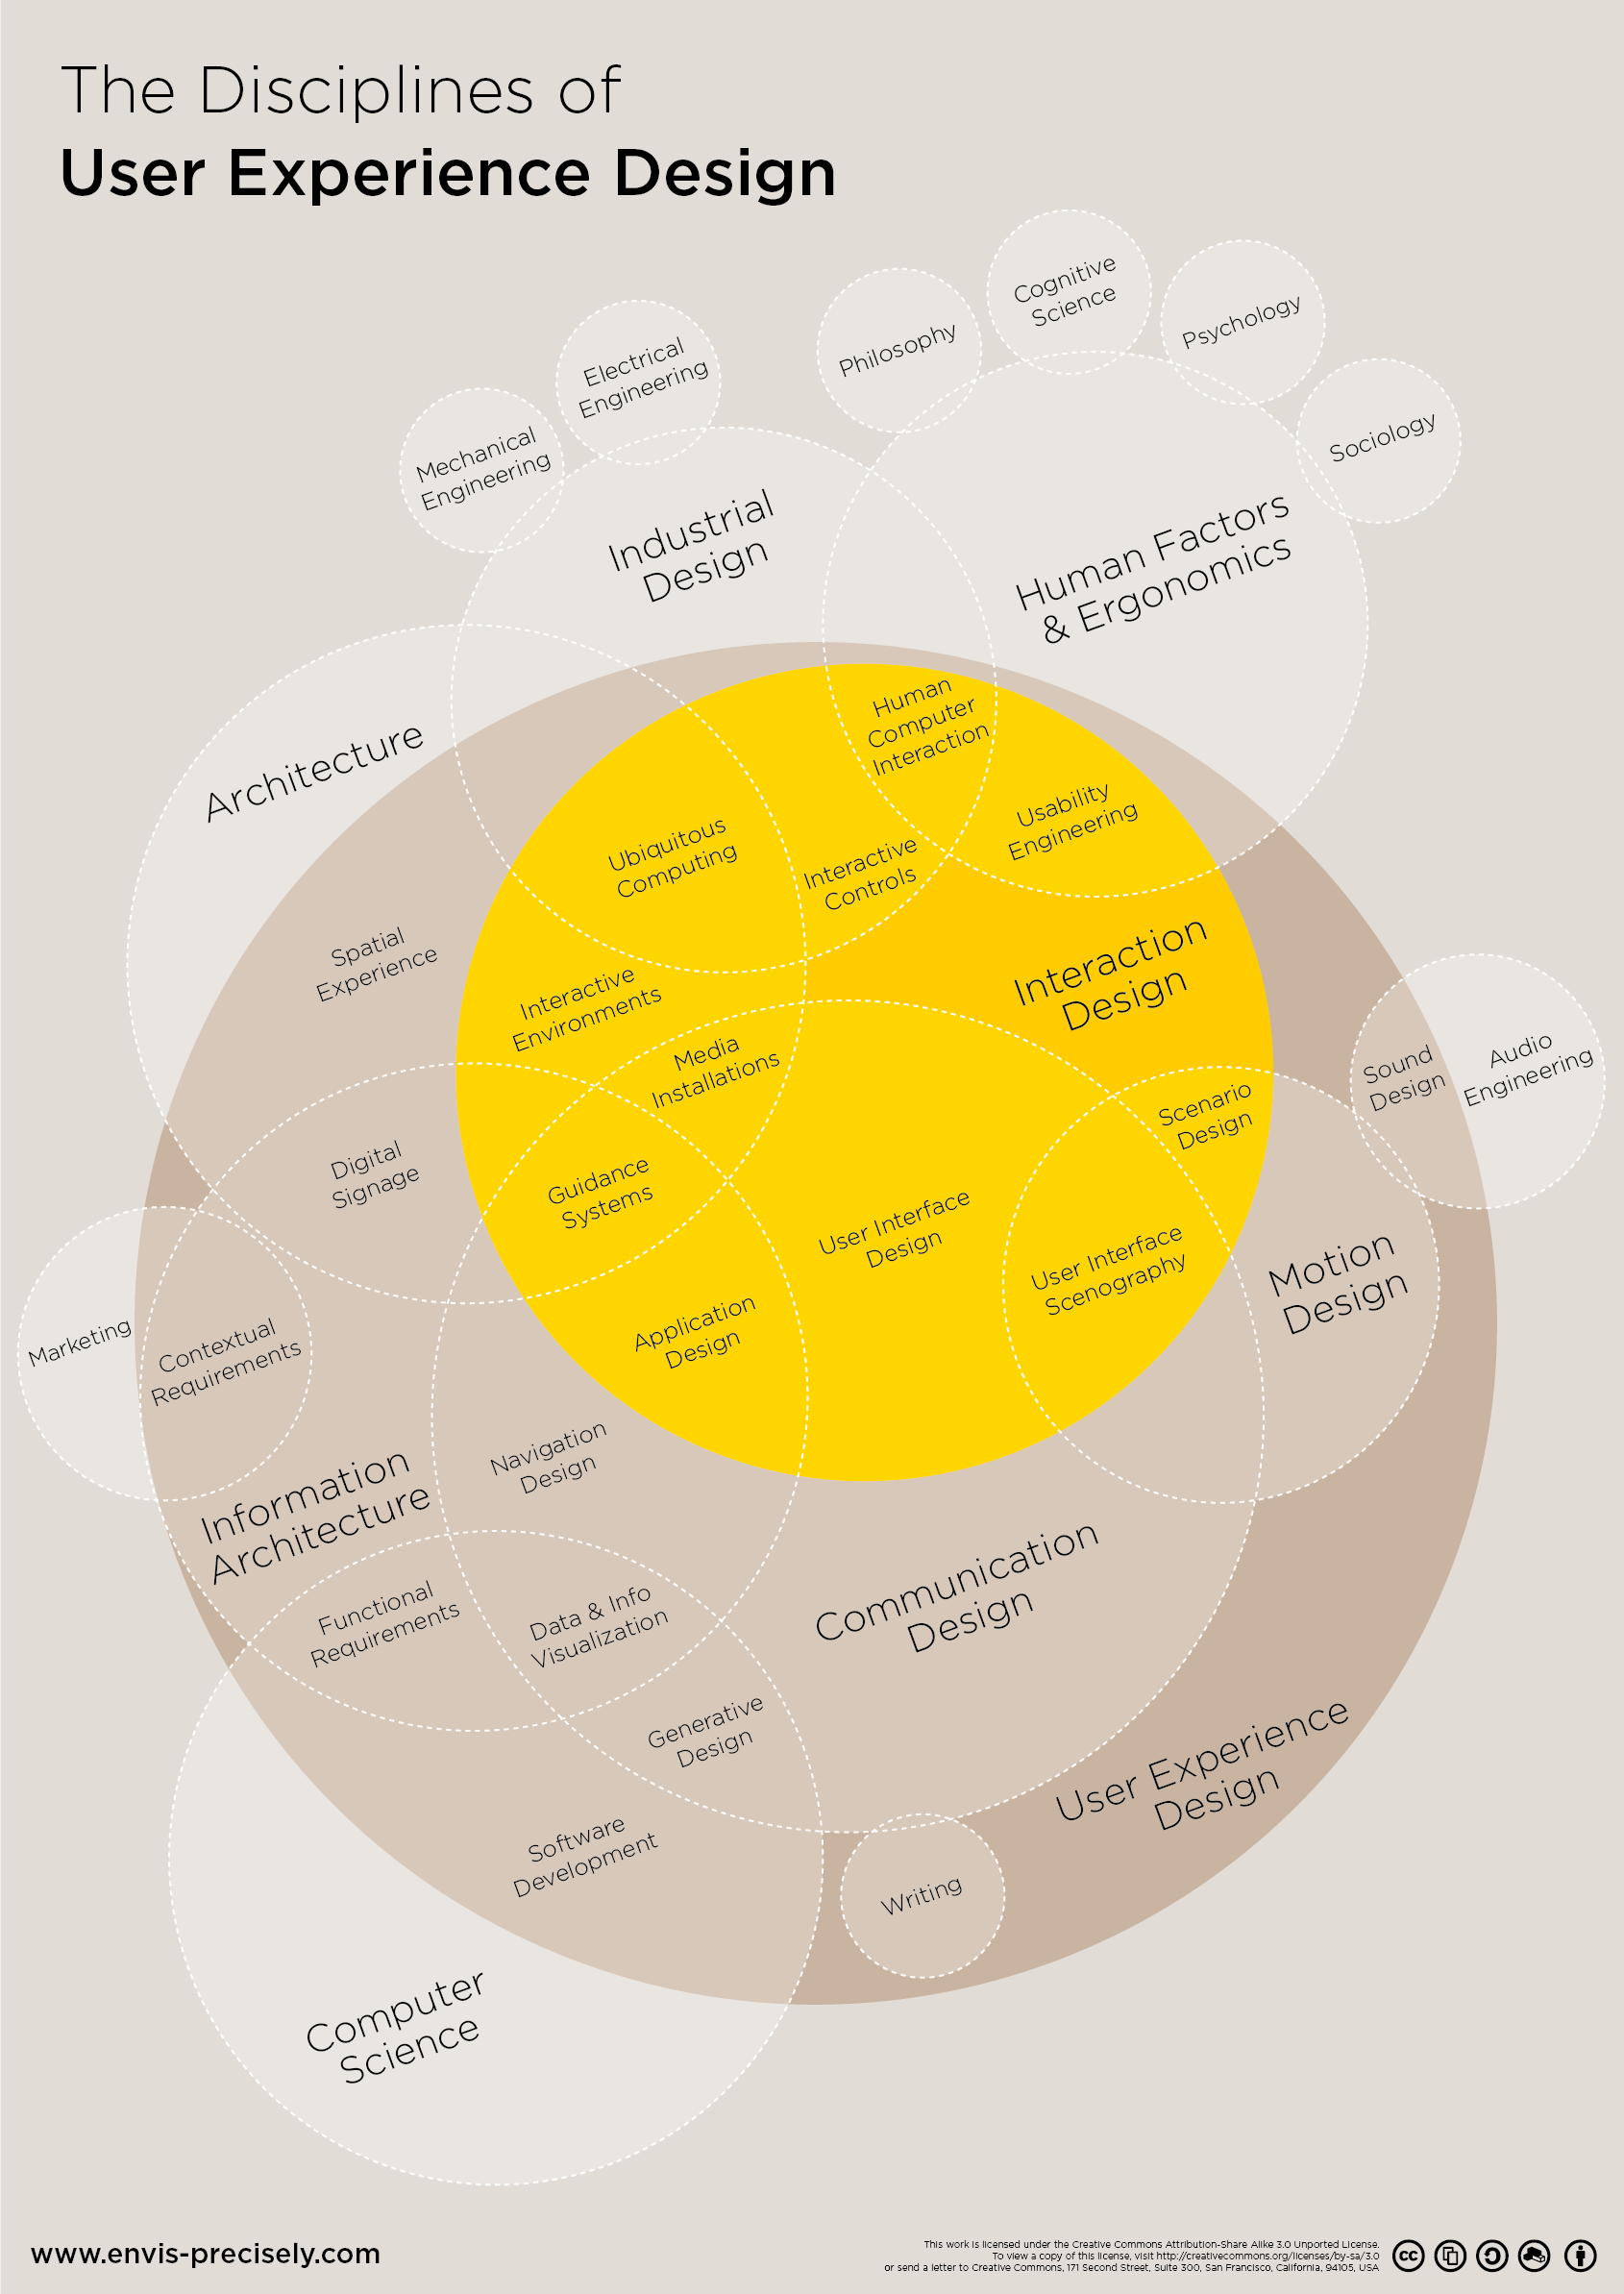 This giant Venn diagram unites all disciplines of user experience design on one canvas. It visualizes the different fields and how they are connected to each other while they're overlapping in some areas of expertise. Download, change and improve under cc: https://github.com/envisprecisely/disciplines-of-ux